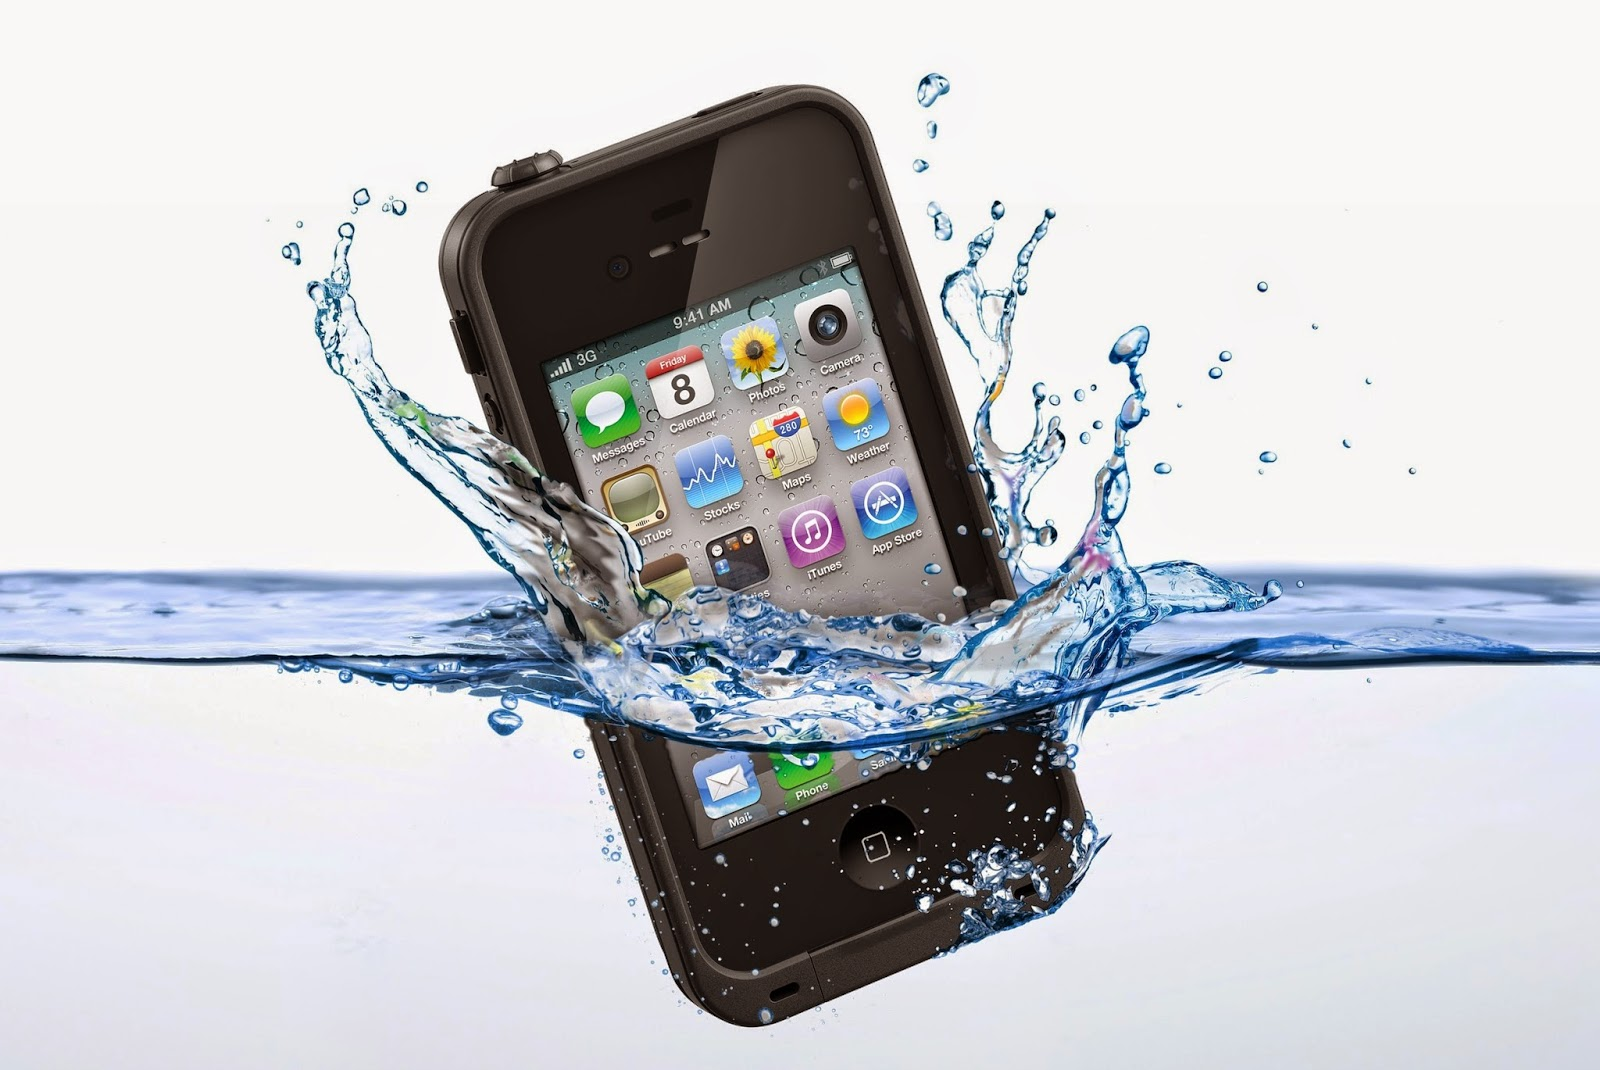 The iPhone waterproof phone concept